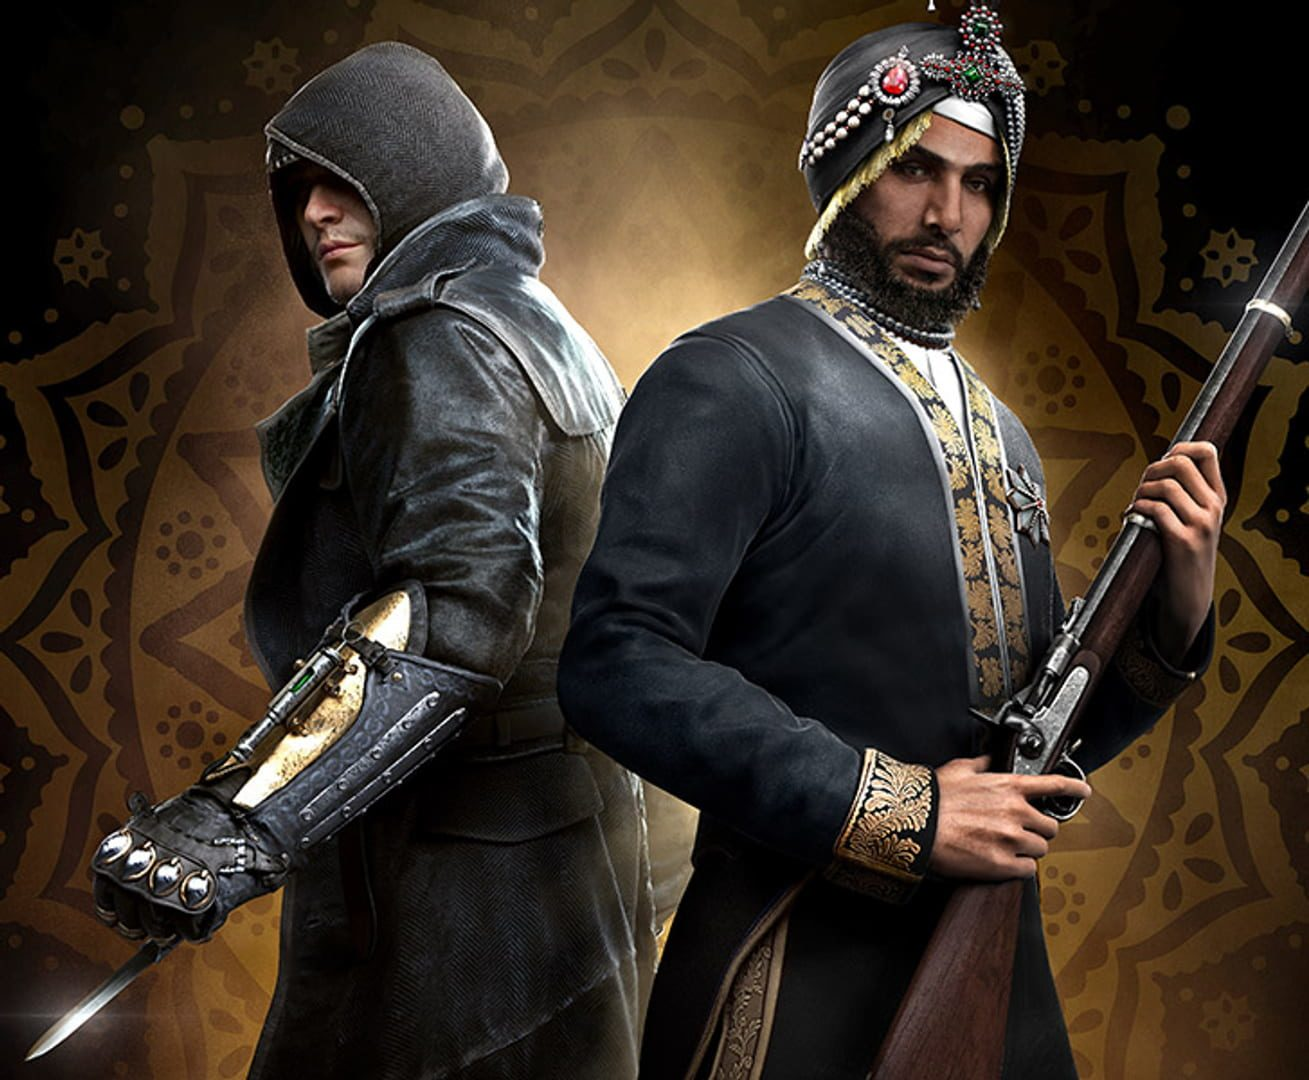 buy Assassin's Creed: Syndicate - The Last Maharaja cd key for xbox platform